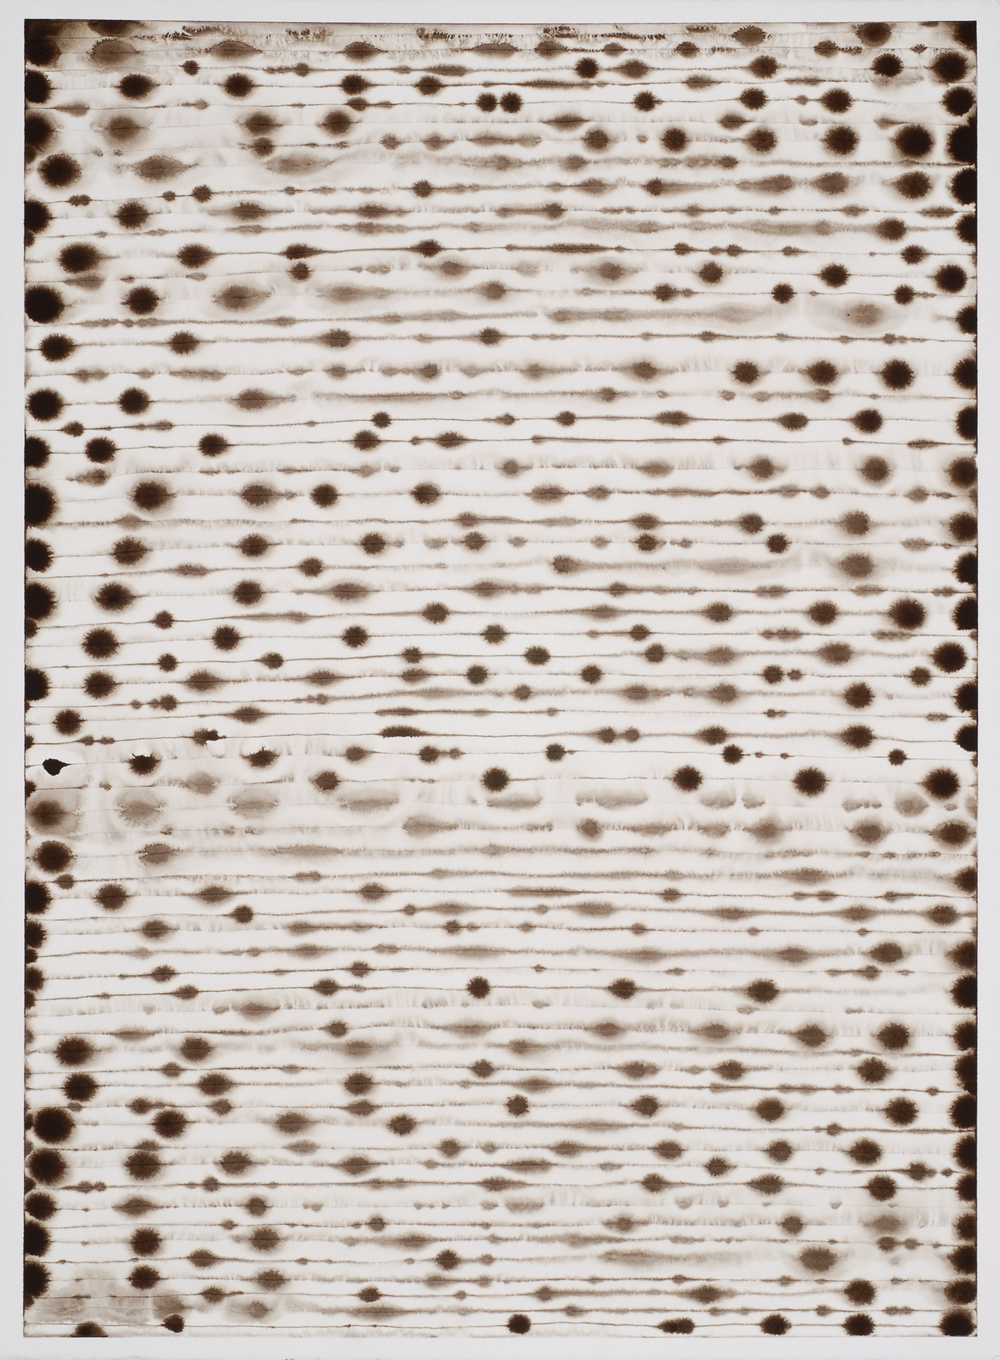 07.27.11 (the groundless ground), 2011, ink on Fabriano paper, 30 x 22 inches